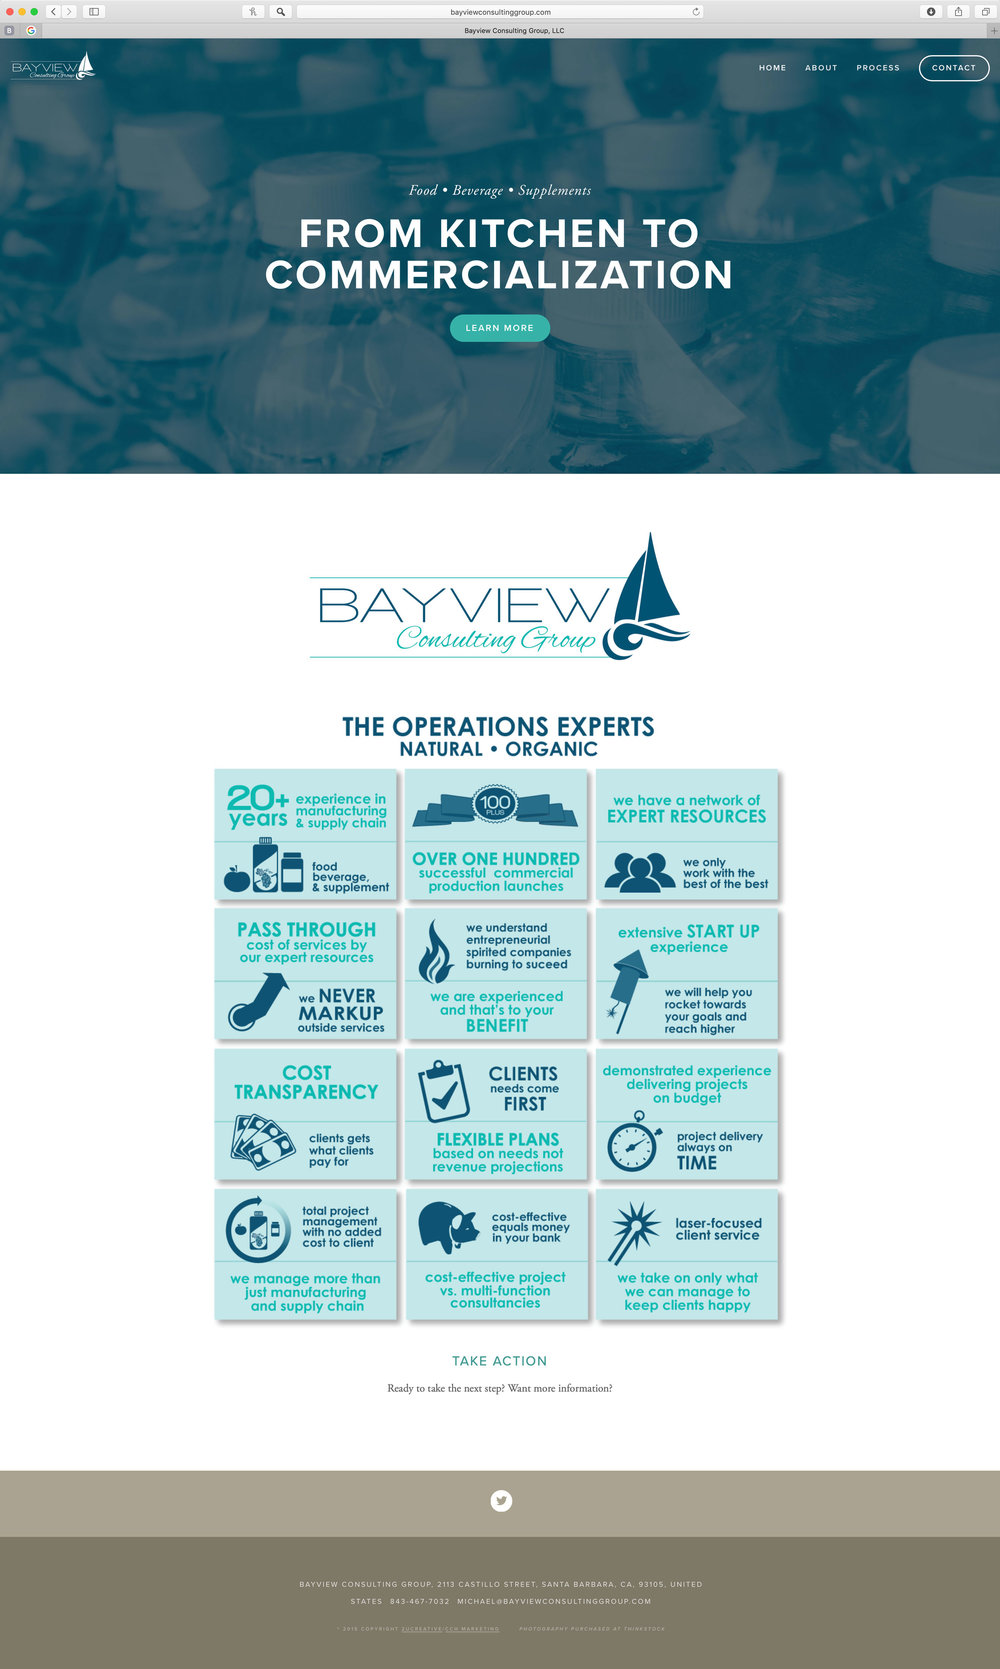 bayview-consulting.jpg